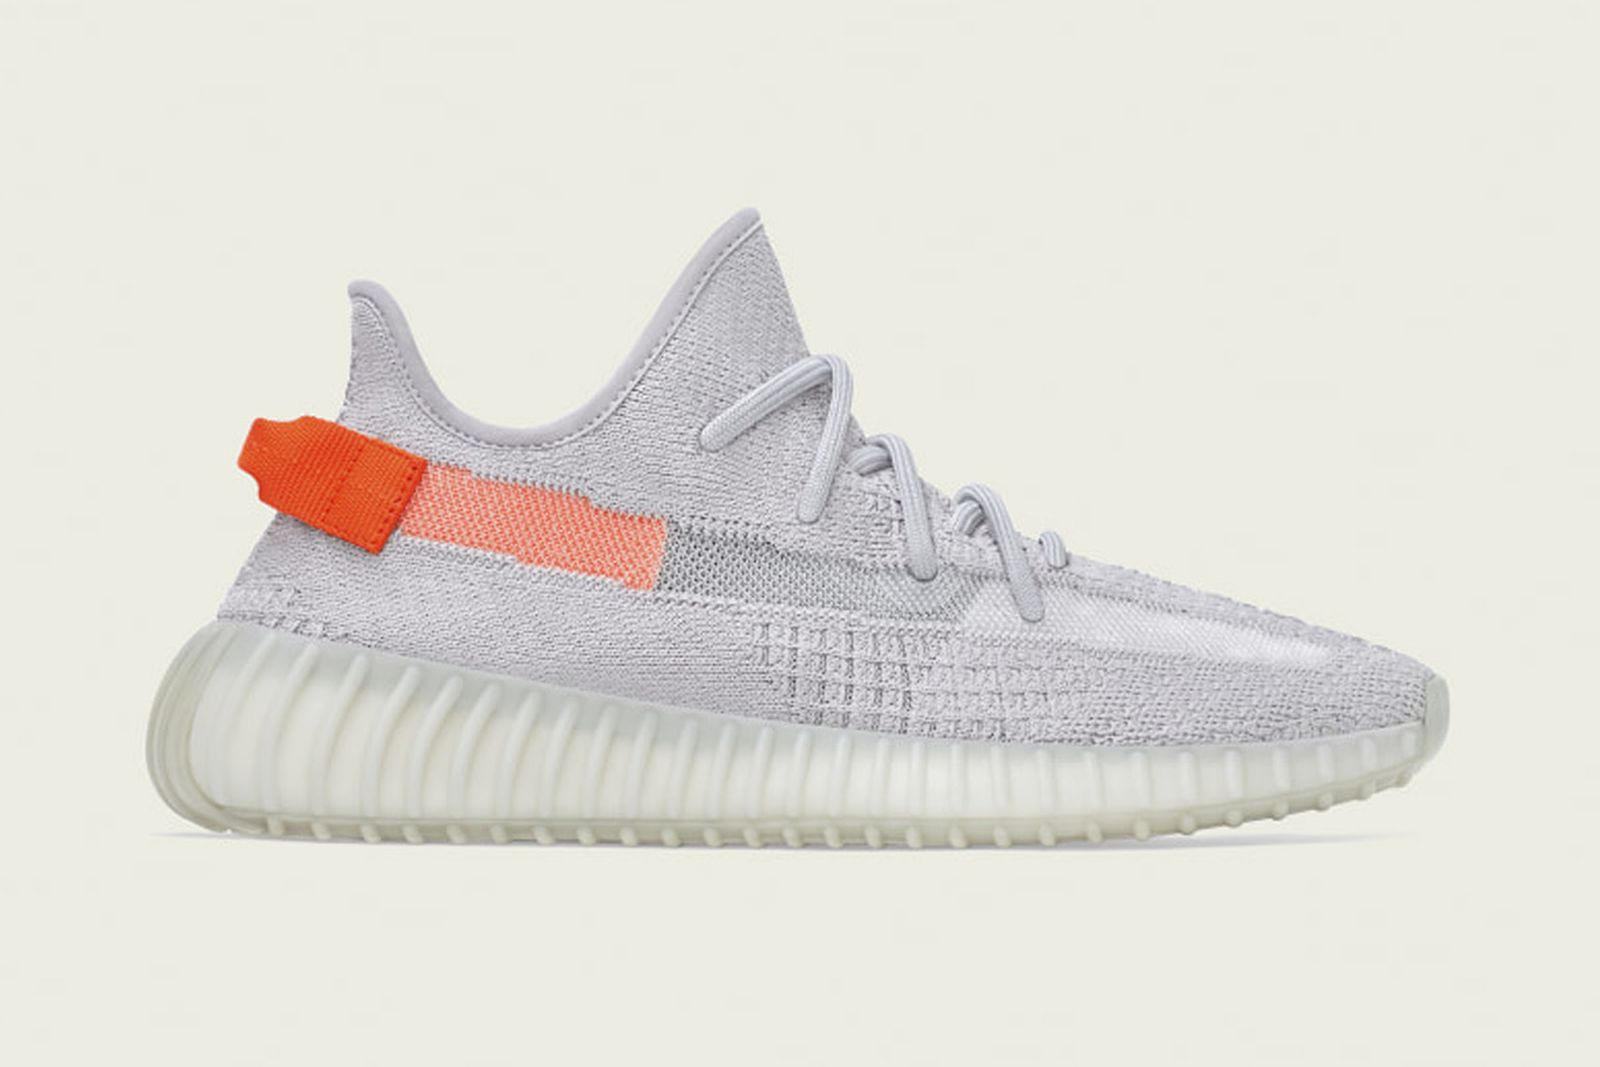 adidas-yeezy-boost-350-v2-taillight-release-date-price-03